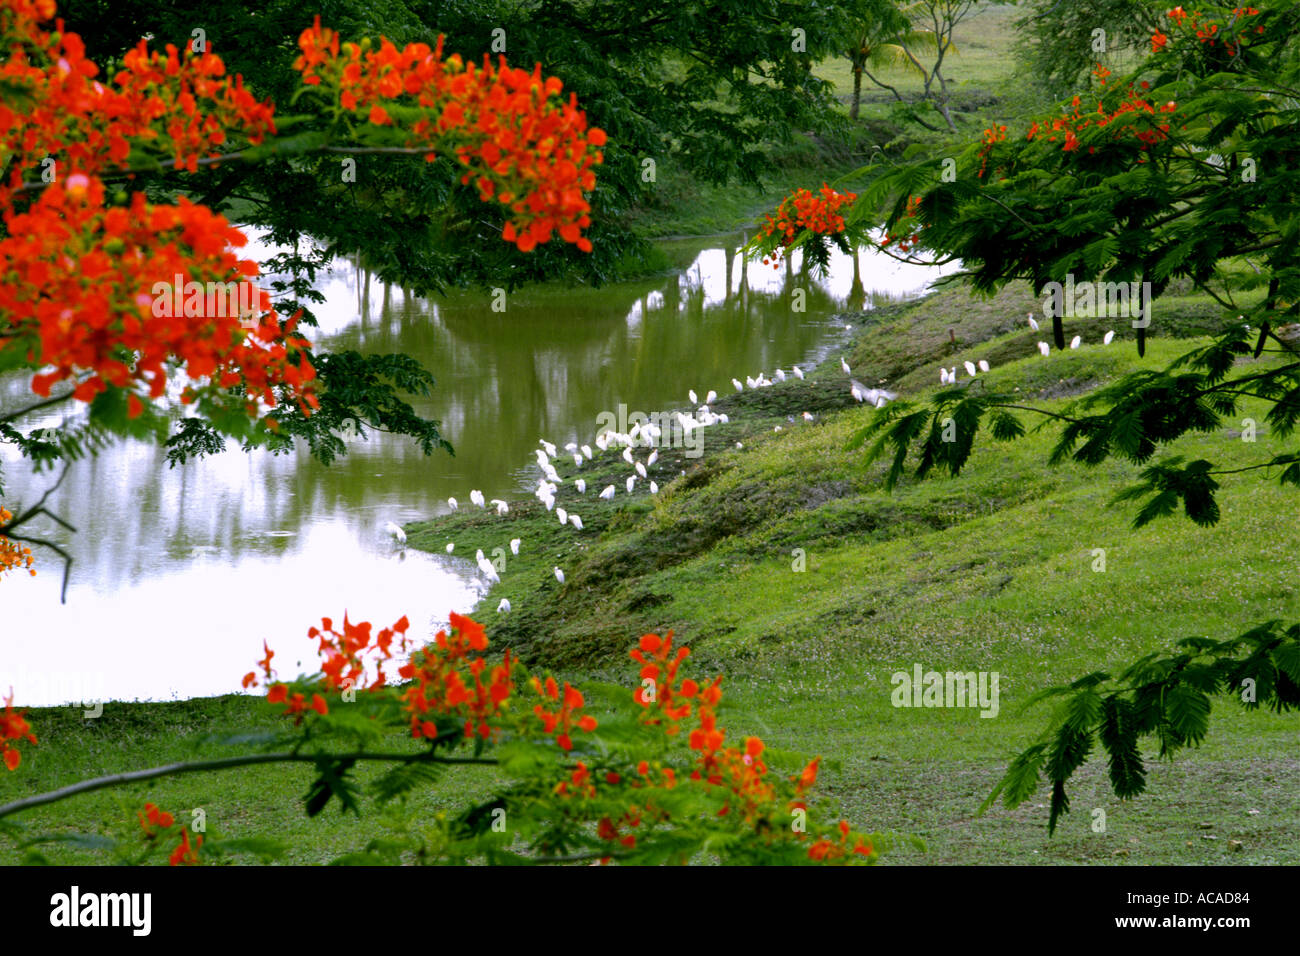 Red Acacia Tree Delonia Regia With Red Flowers And Egrets Feeding In